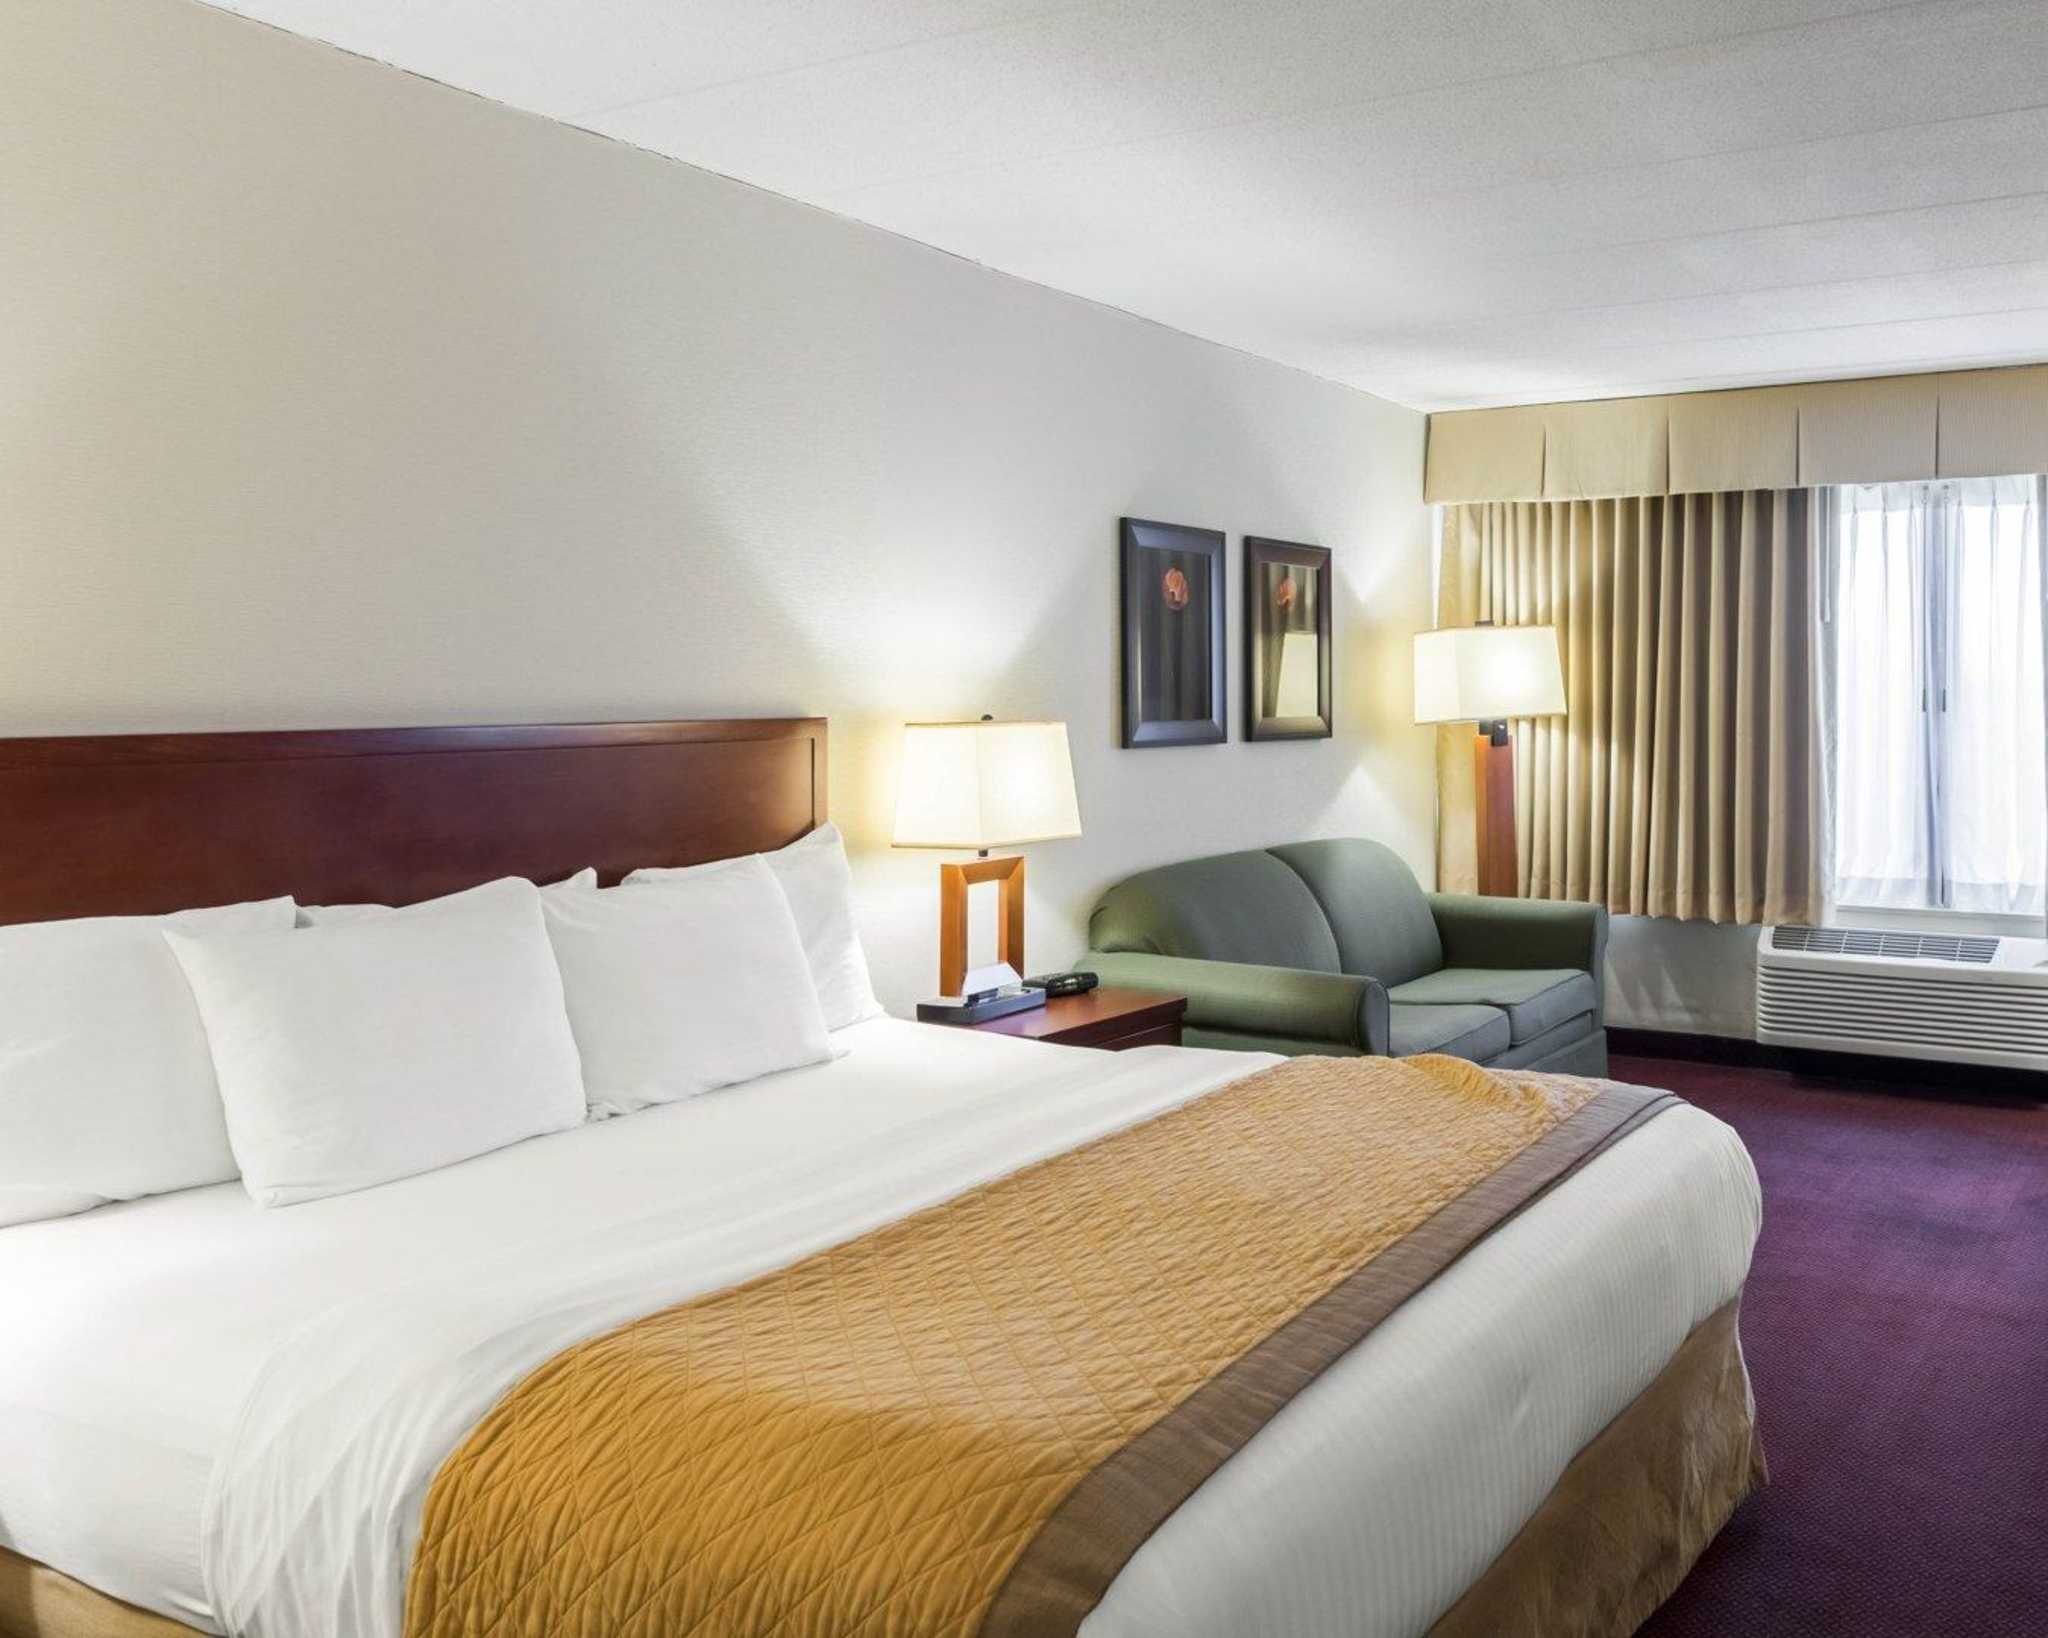 Clarion Hotel image 8